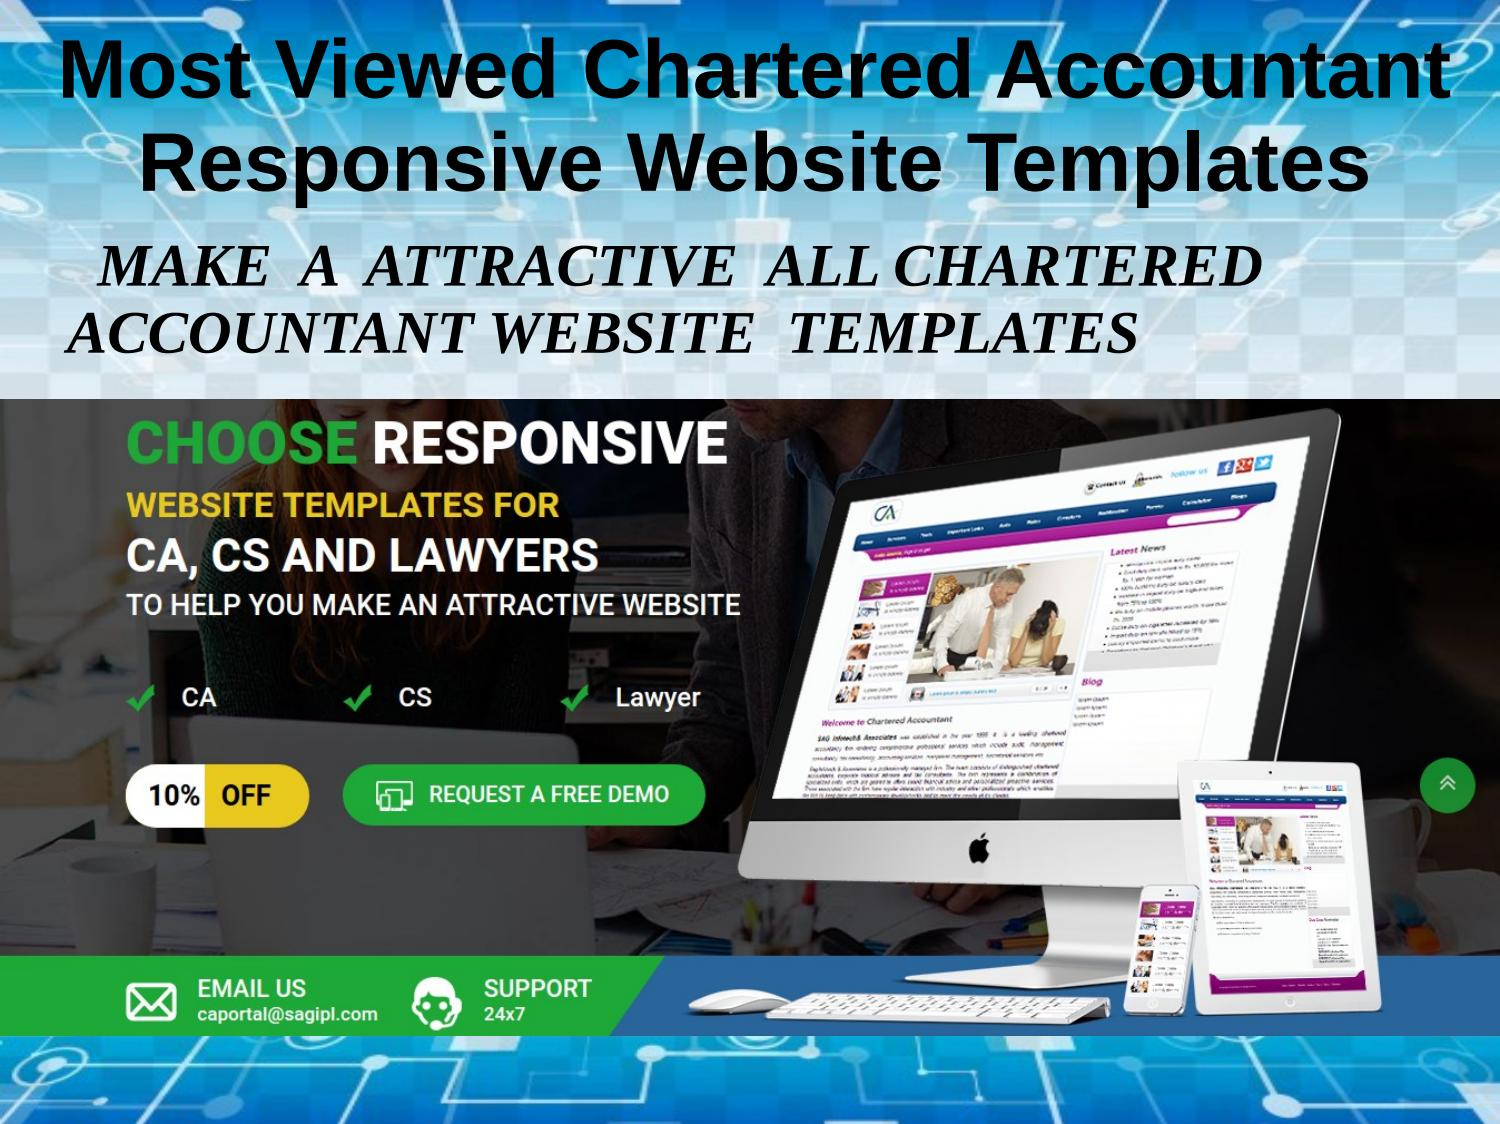 Professional Layouts For Chartered Accountant Website Template By Akhil Jain Issuu